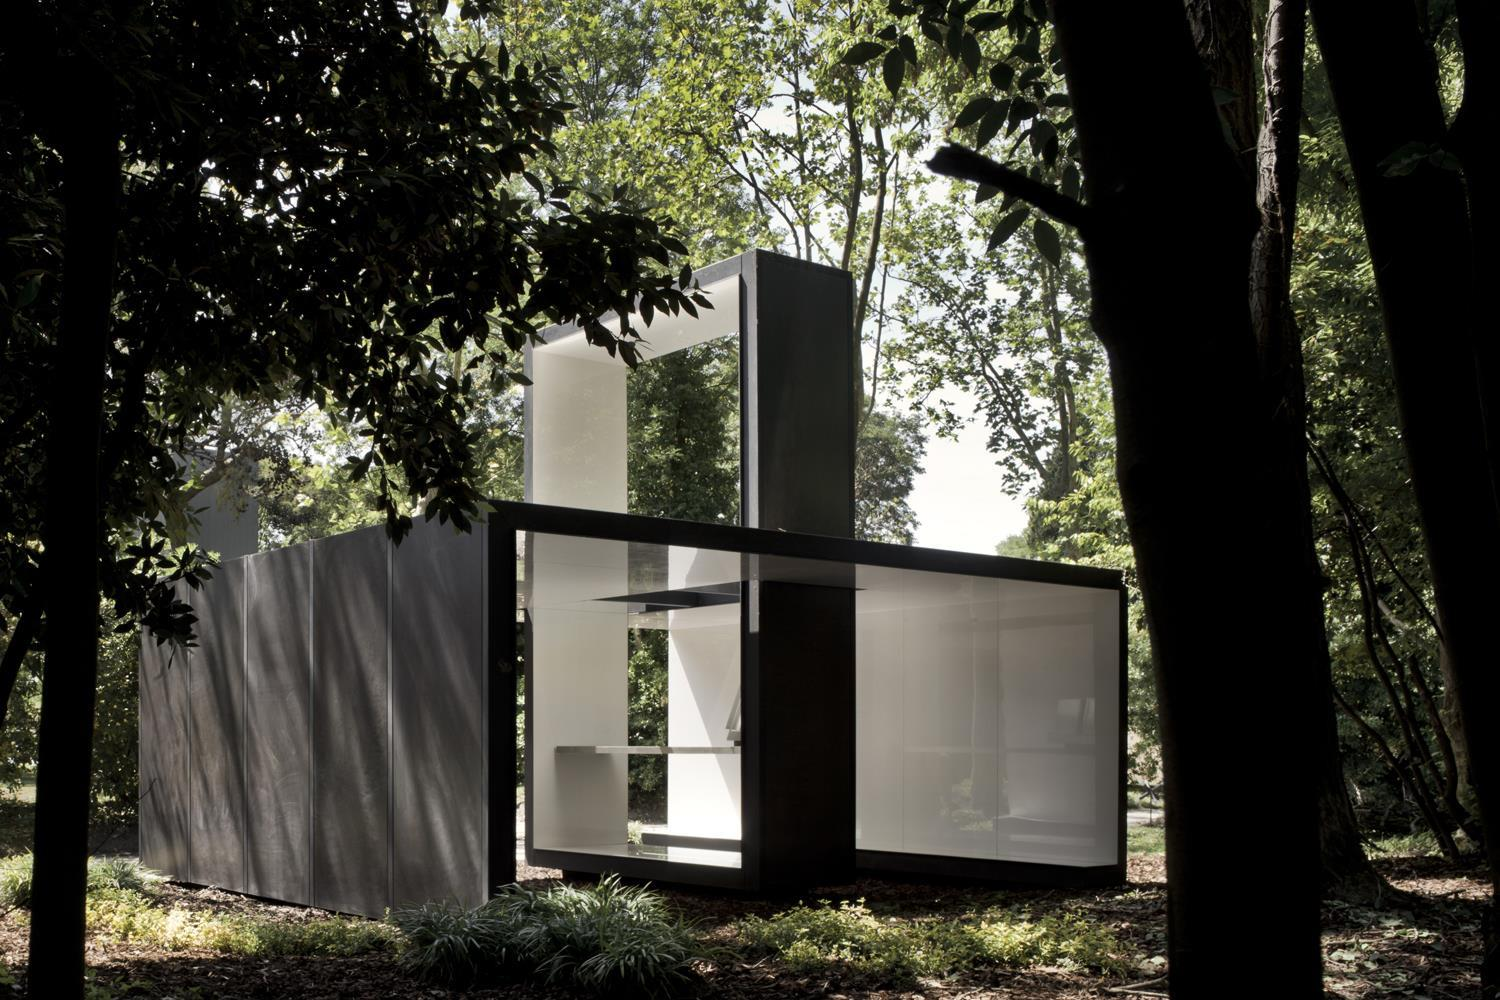 Cotto d'Este and Panariagroup at the Biennale of Architecture in Venice: Photo 7